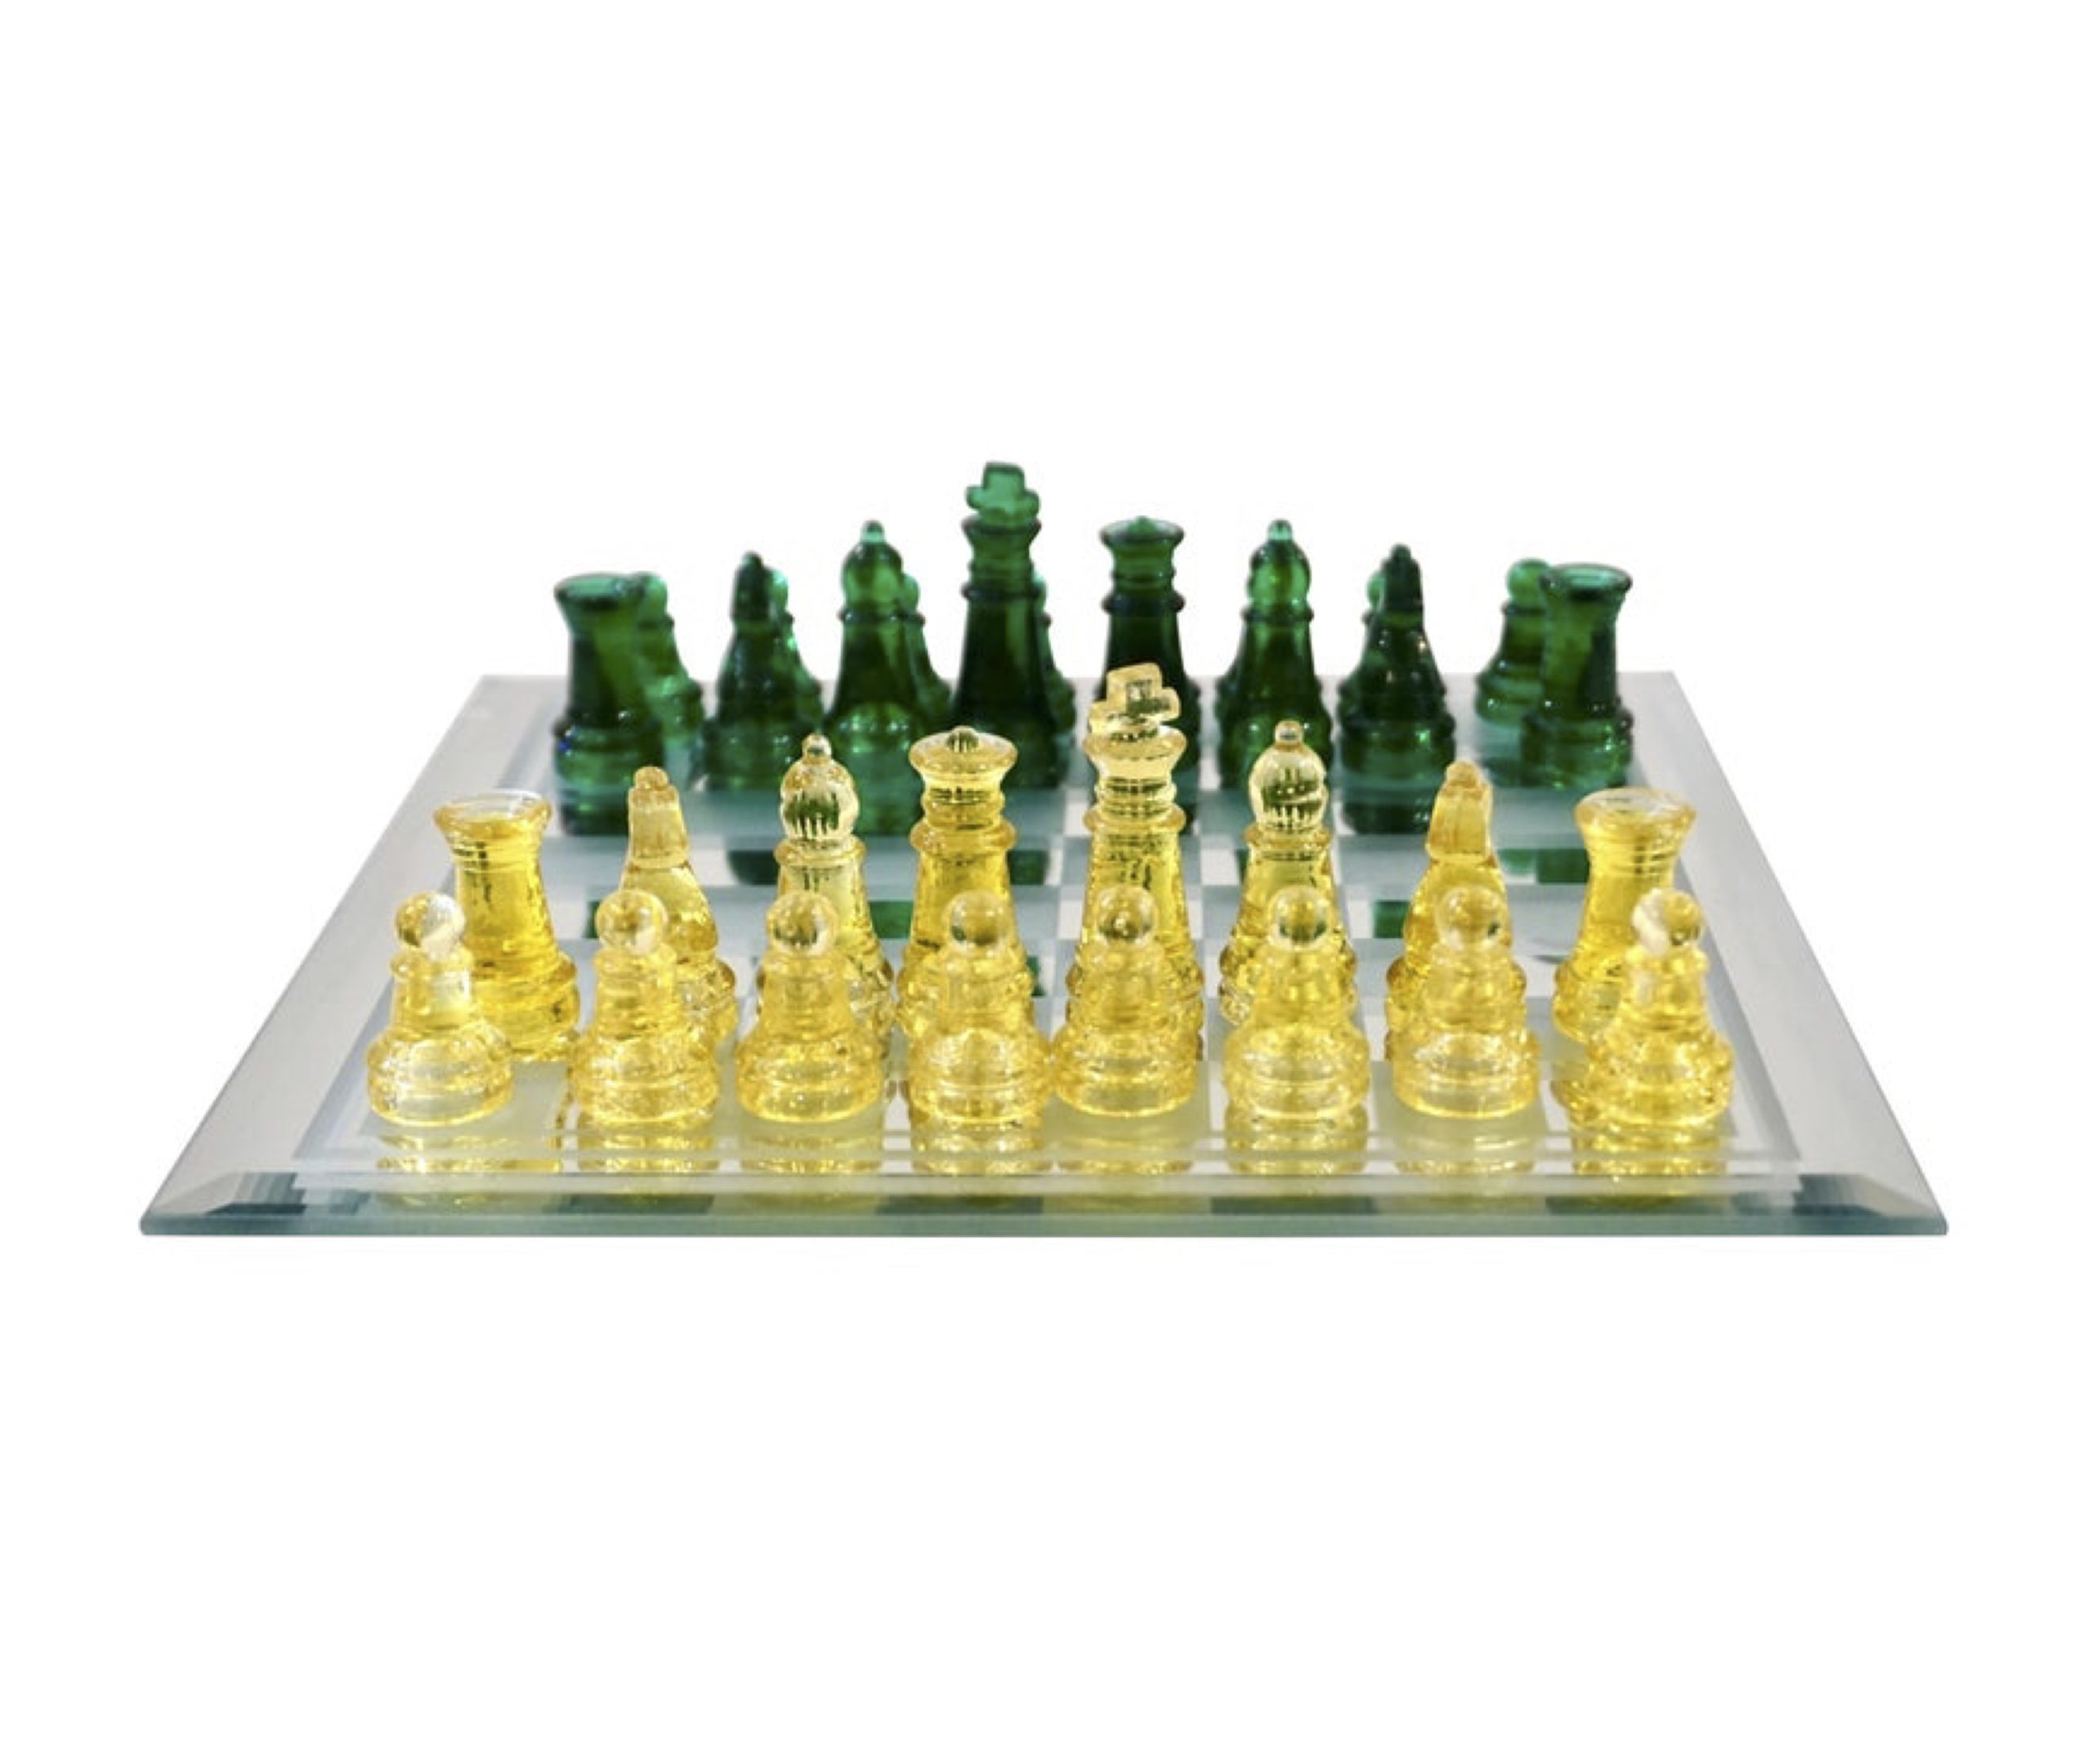 cosulich_interiors_and_antiques_products_new_york_design_contemporary_minimalist_green_yellow_murano_glass_chess_set_mirrored_board-scaled-1